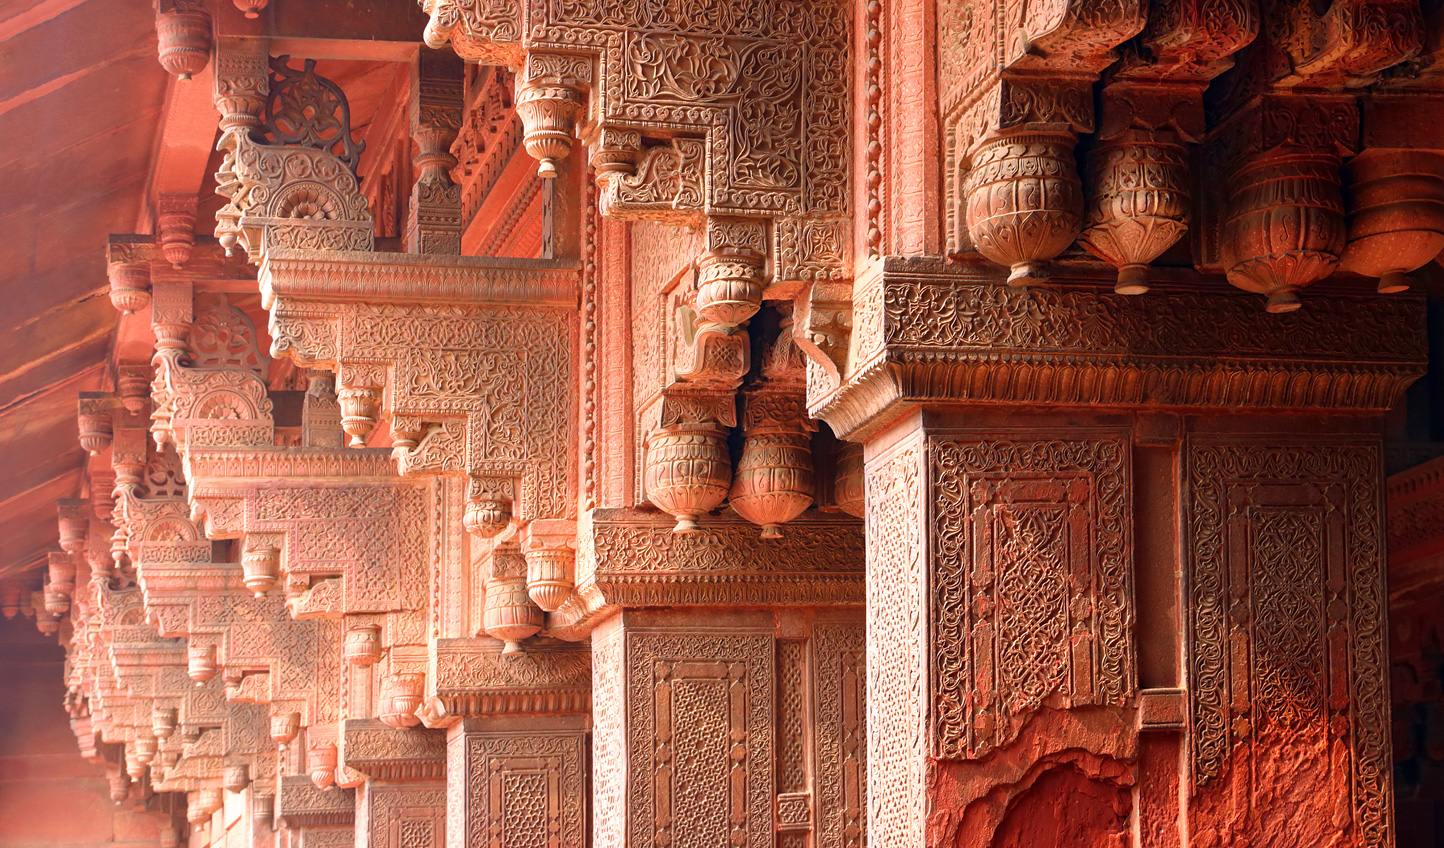 Discover the intricacies of Agra's history